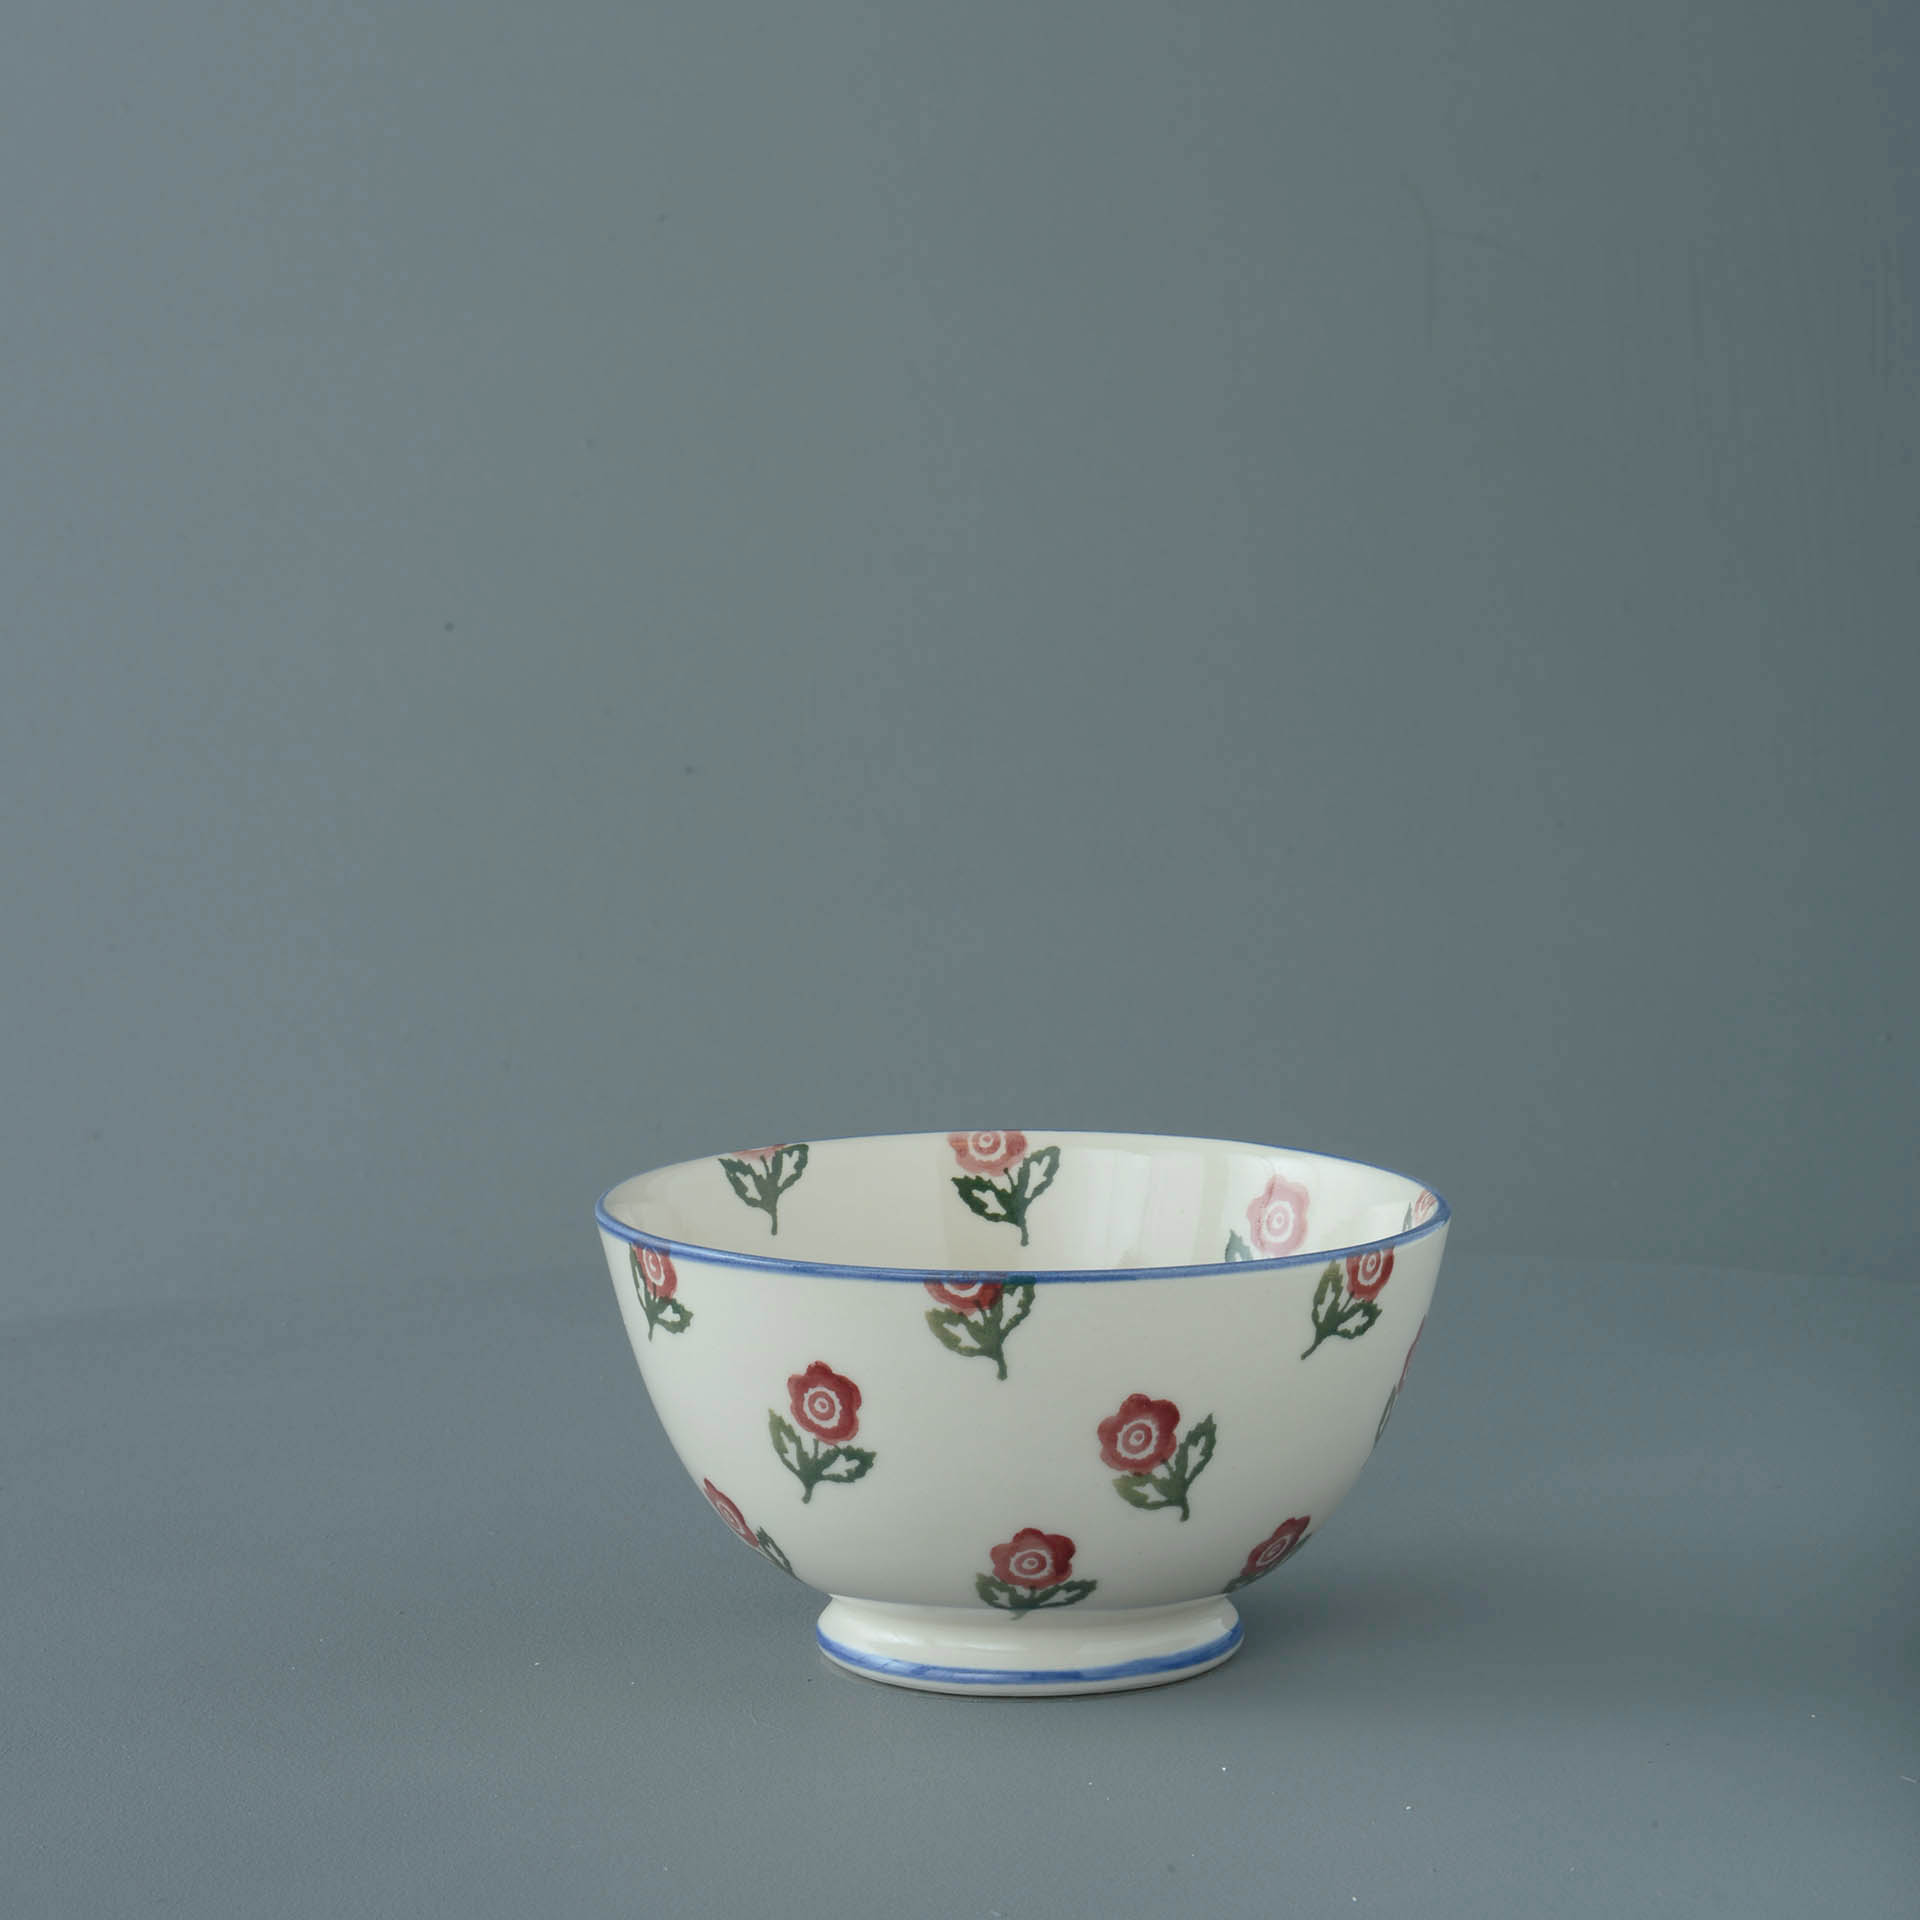 Scattered Rose Cereal Bowl 7 x 13cm